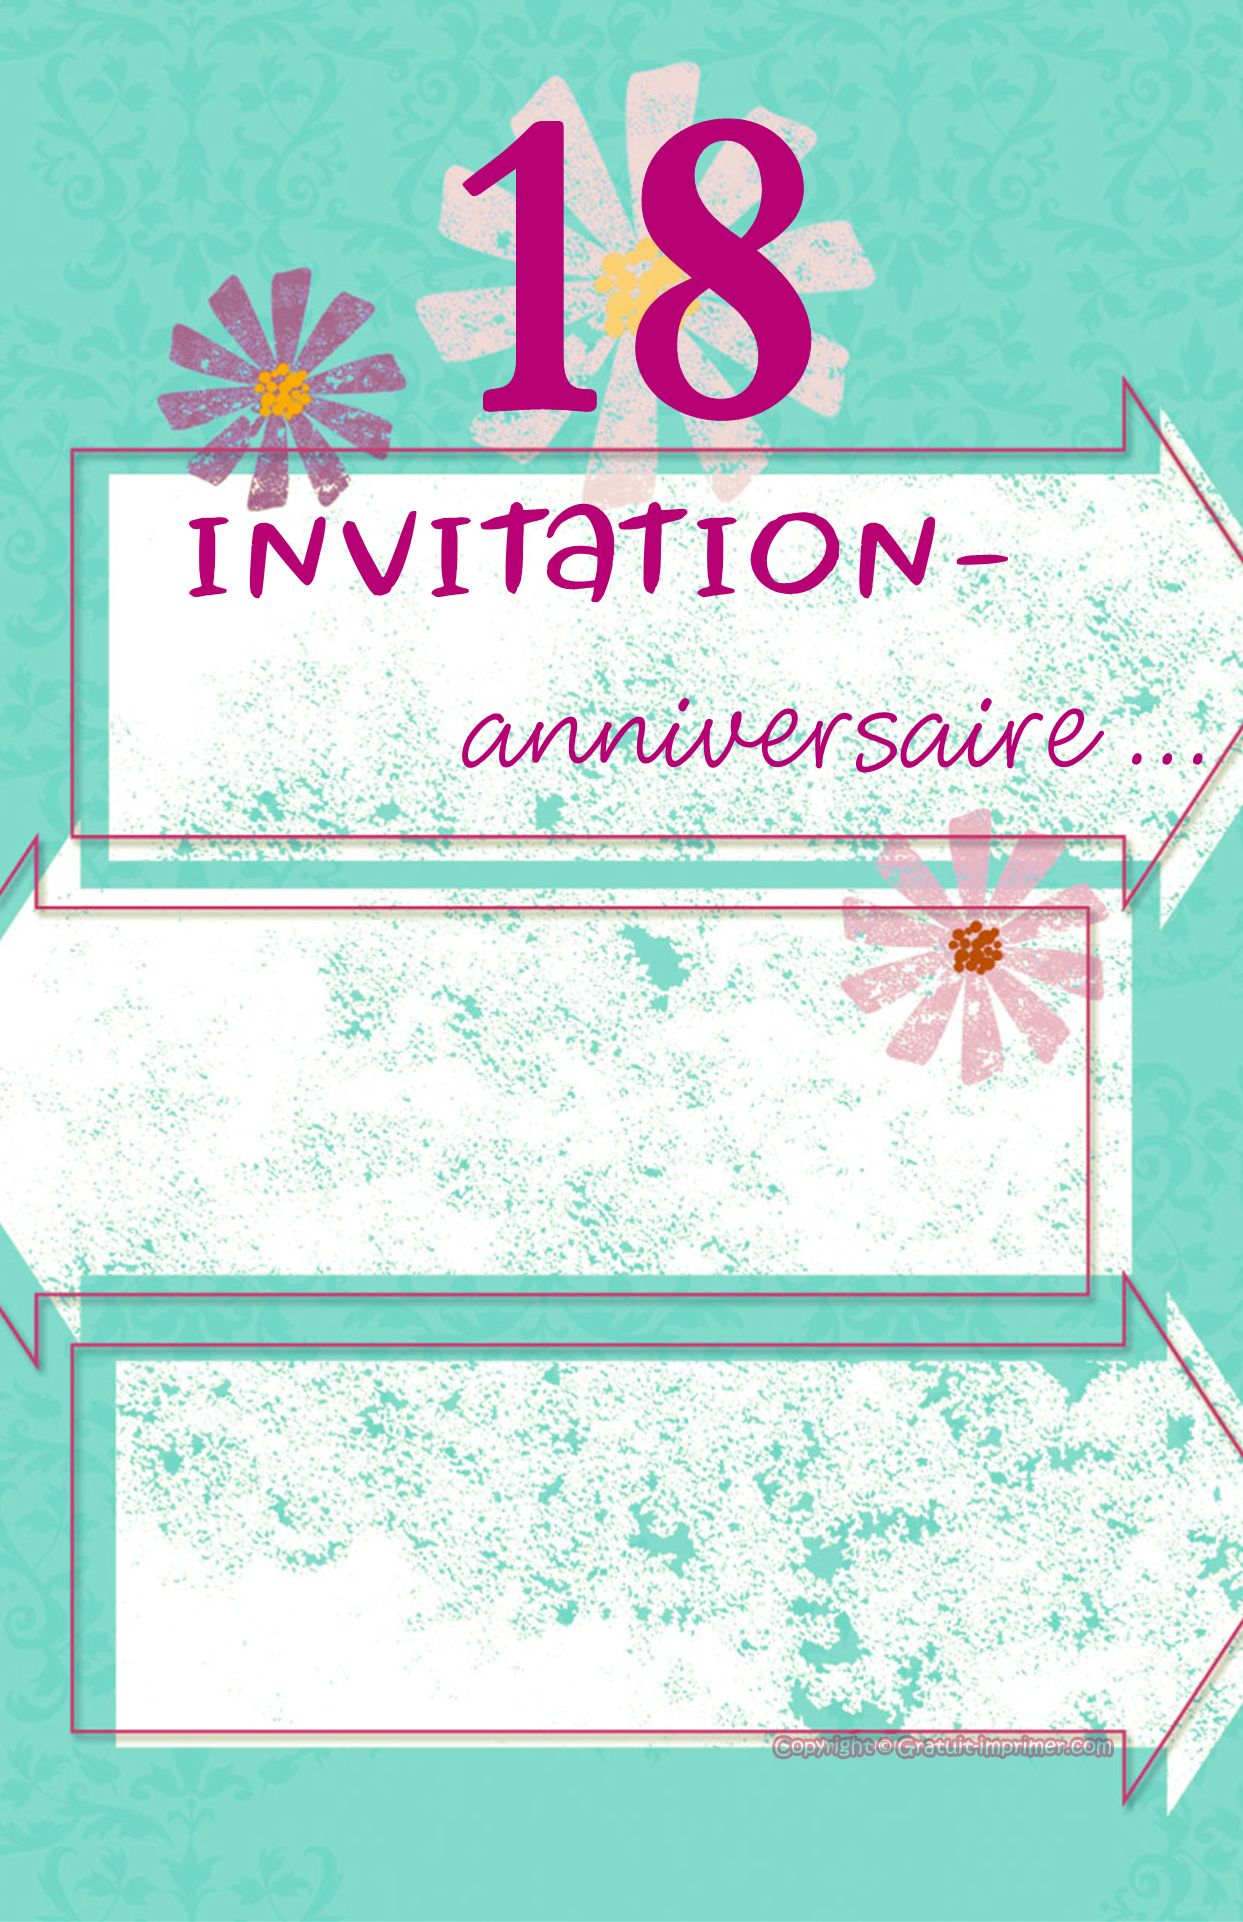 carte invitation anniversaire de 18 ans gratuite a. Black Bedroom Furniture Sets. Home Design Ideas